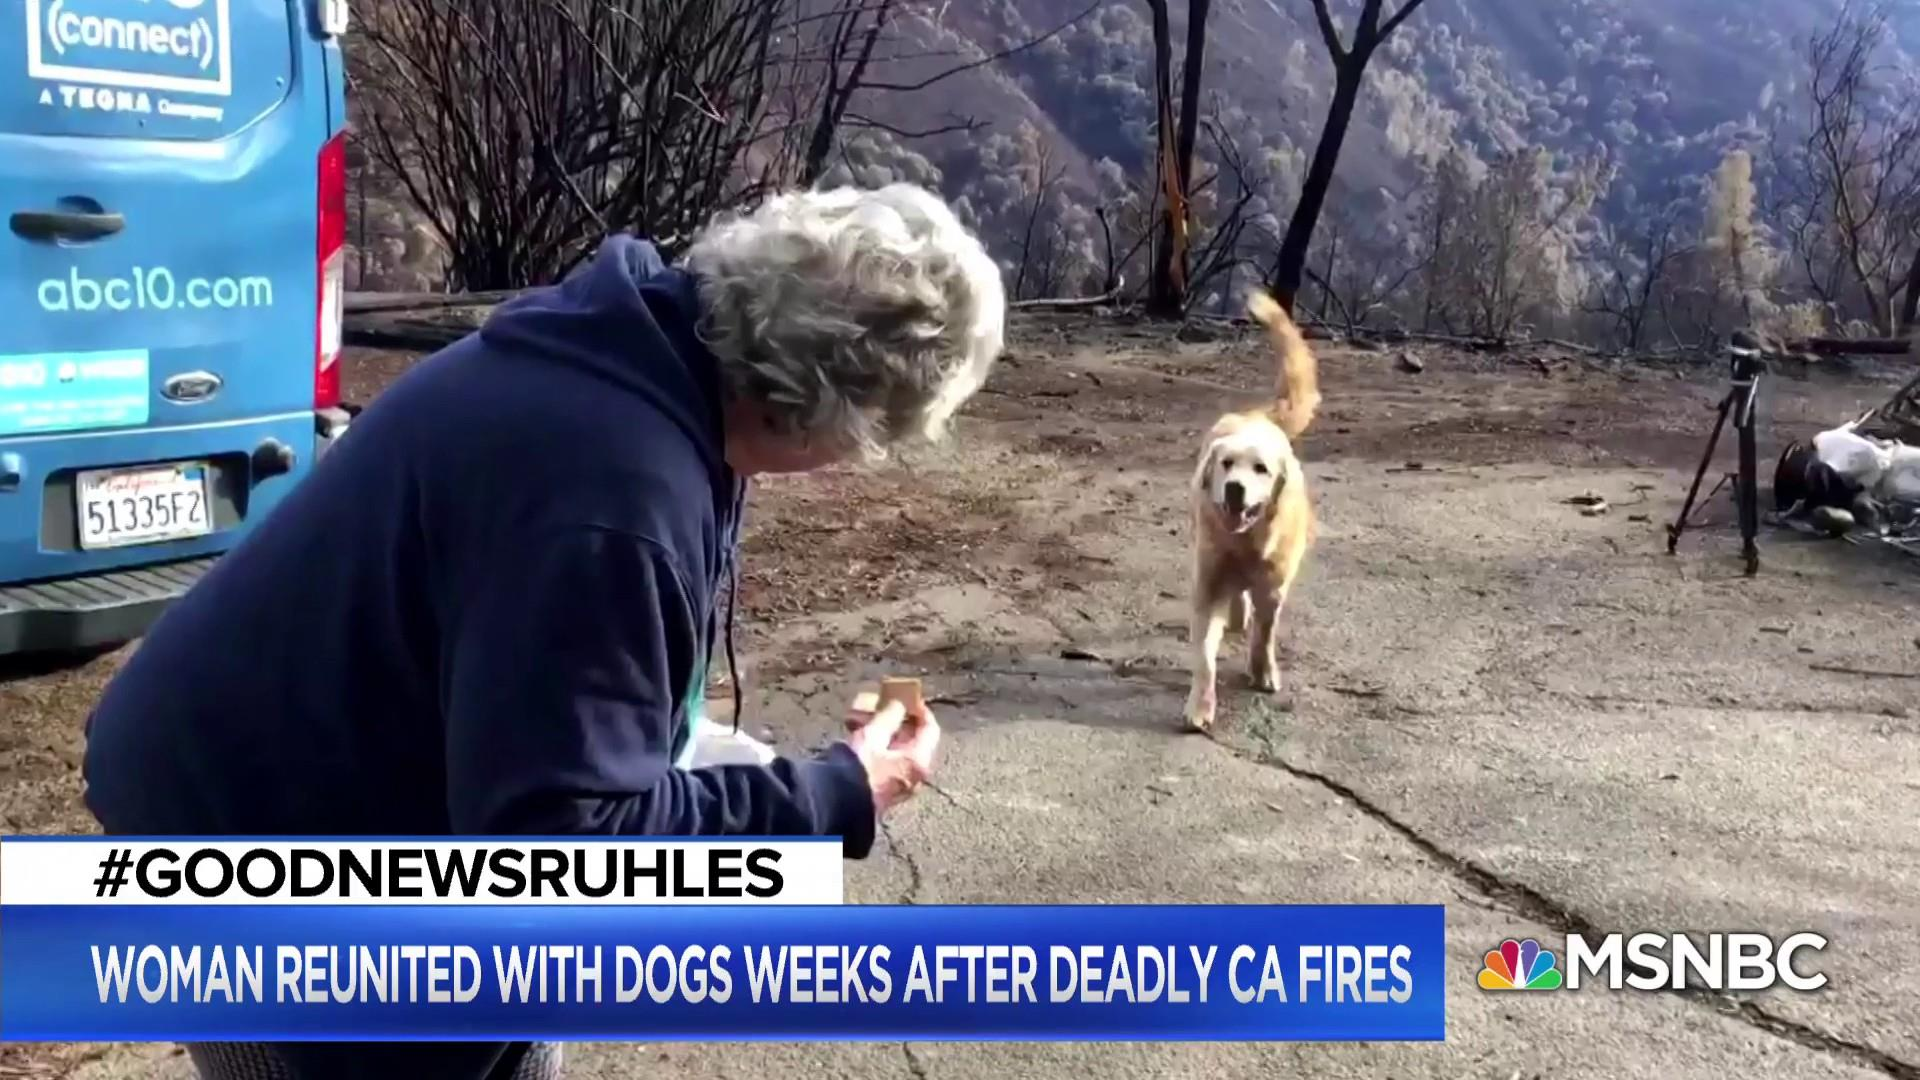 #GoodNewsRUHLES: Dog waits for family at burnt home after CA fires